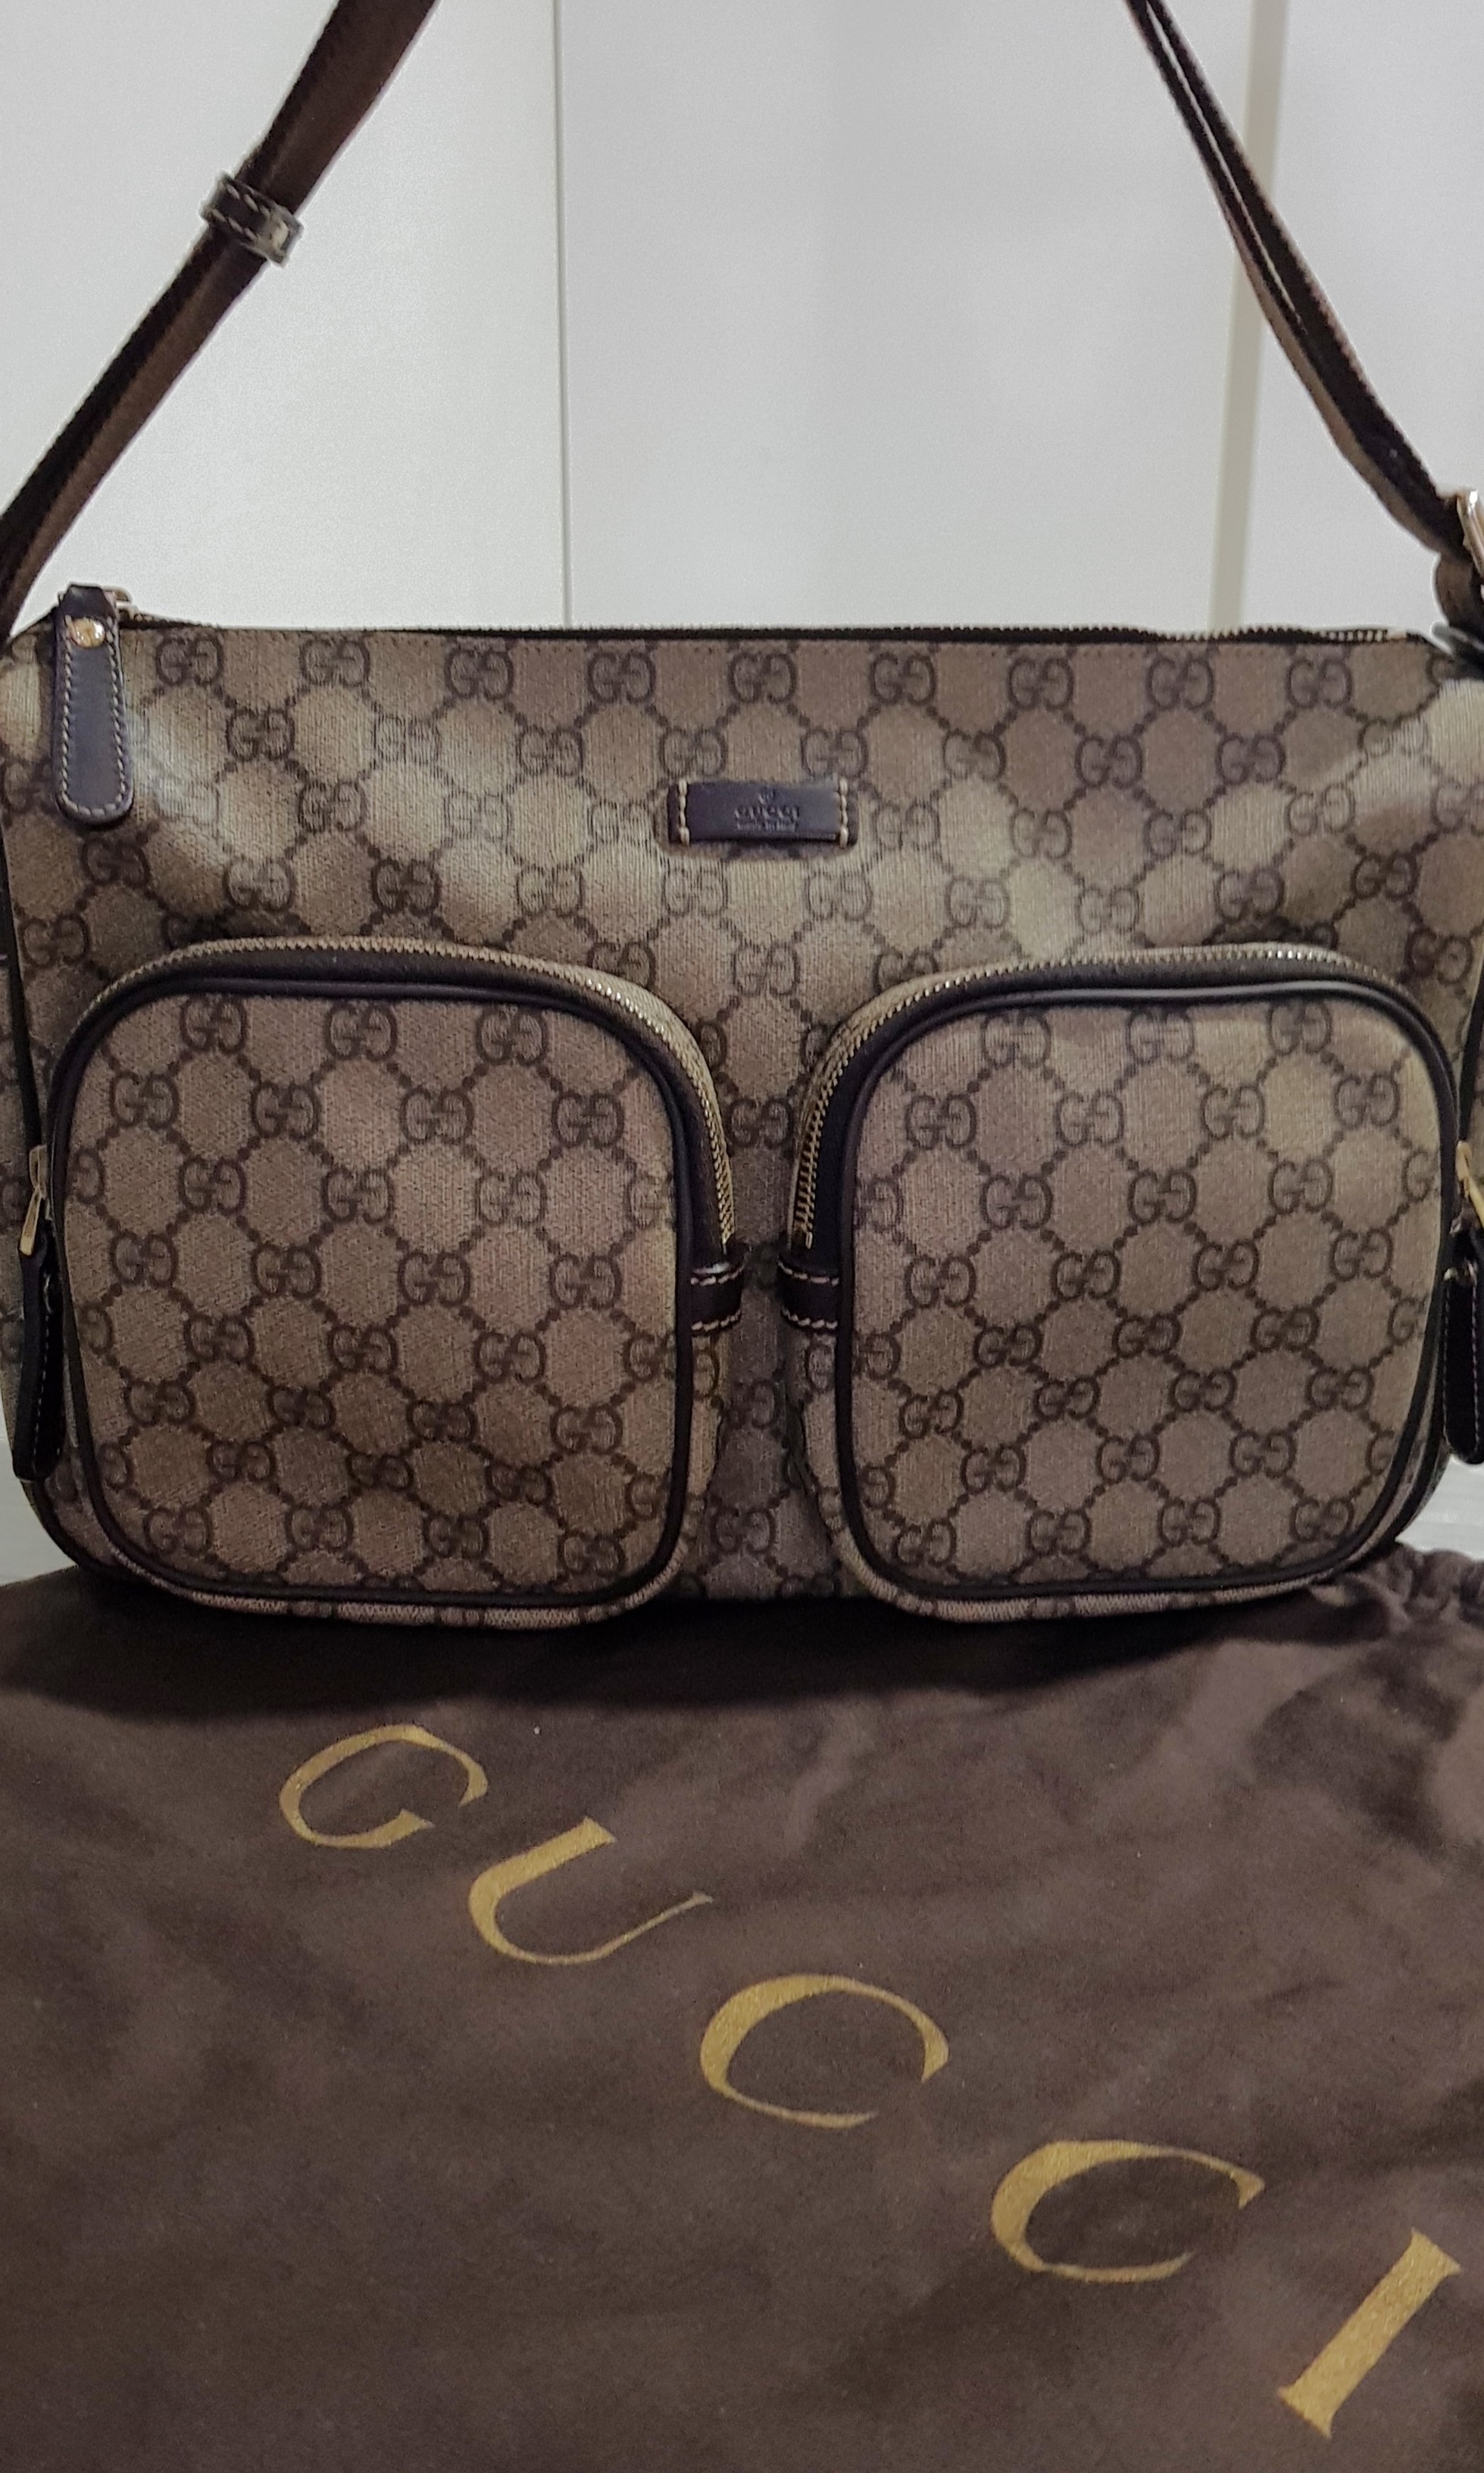 cd005b82a Gucci Messenger Bag, Women's Fashion, Accessories, Others on Carousell